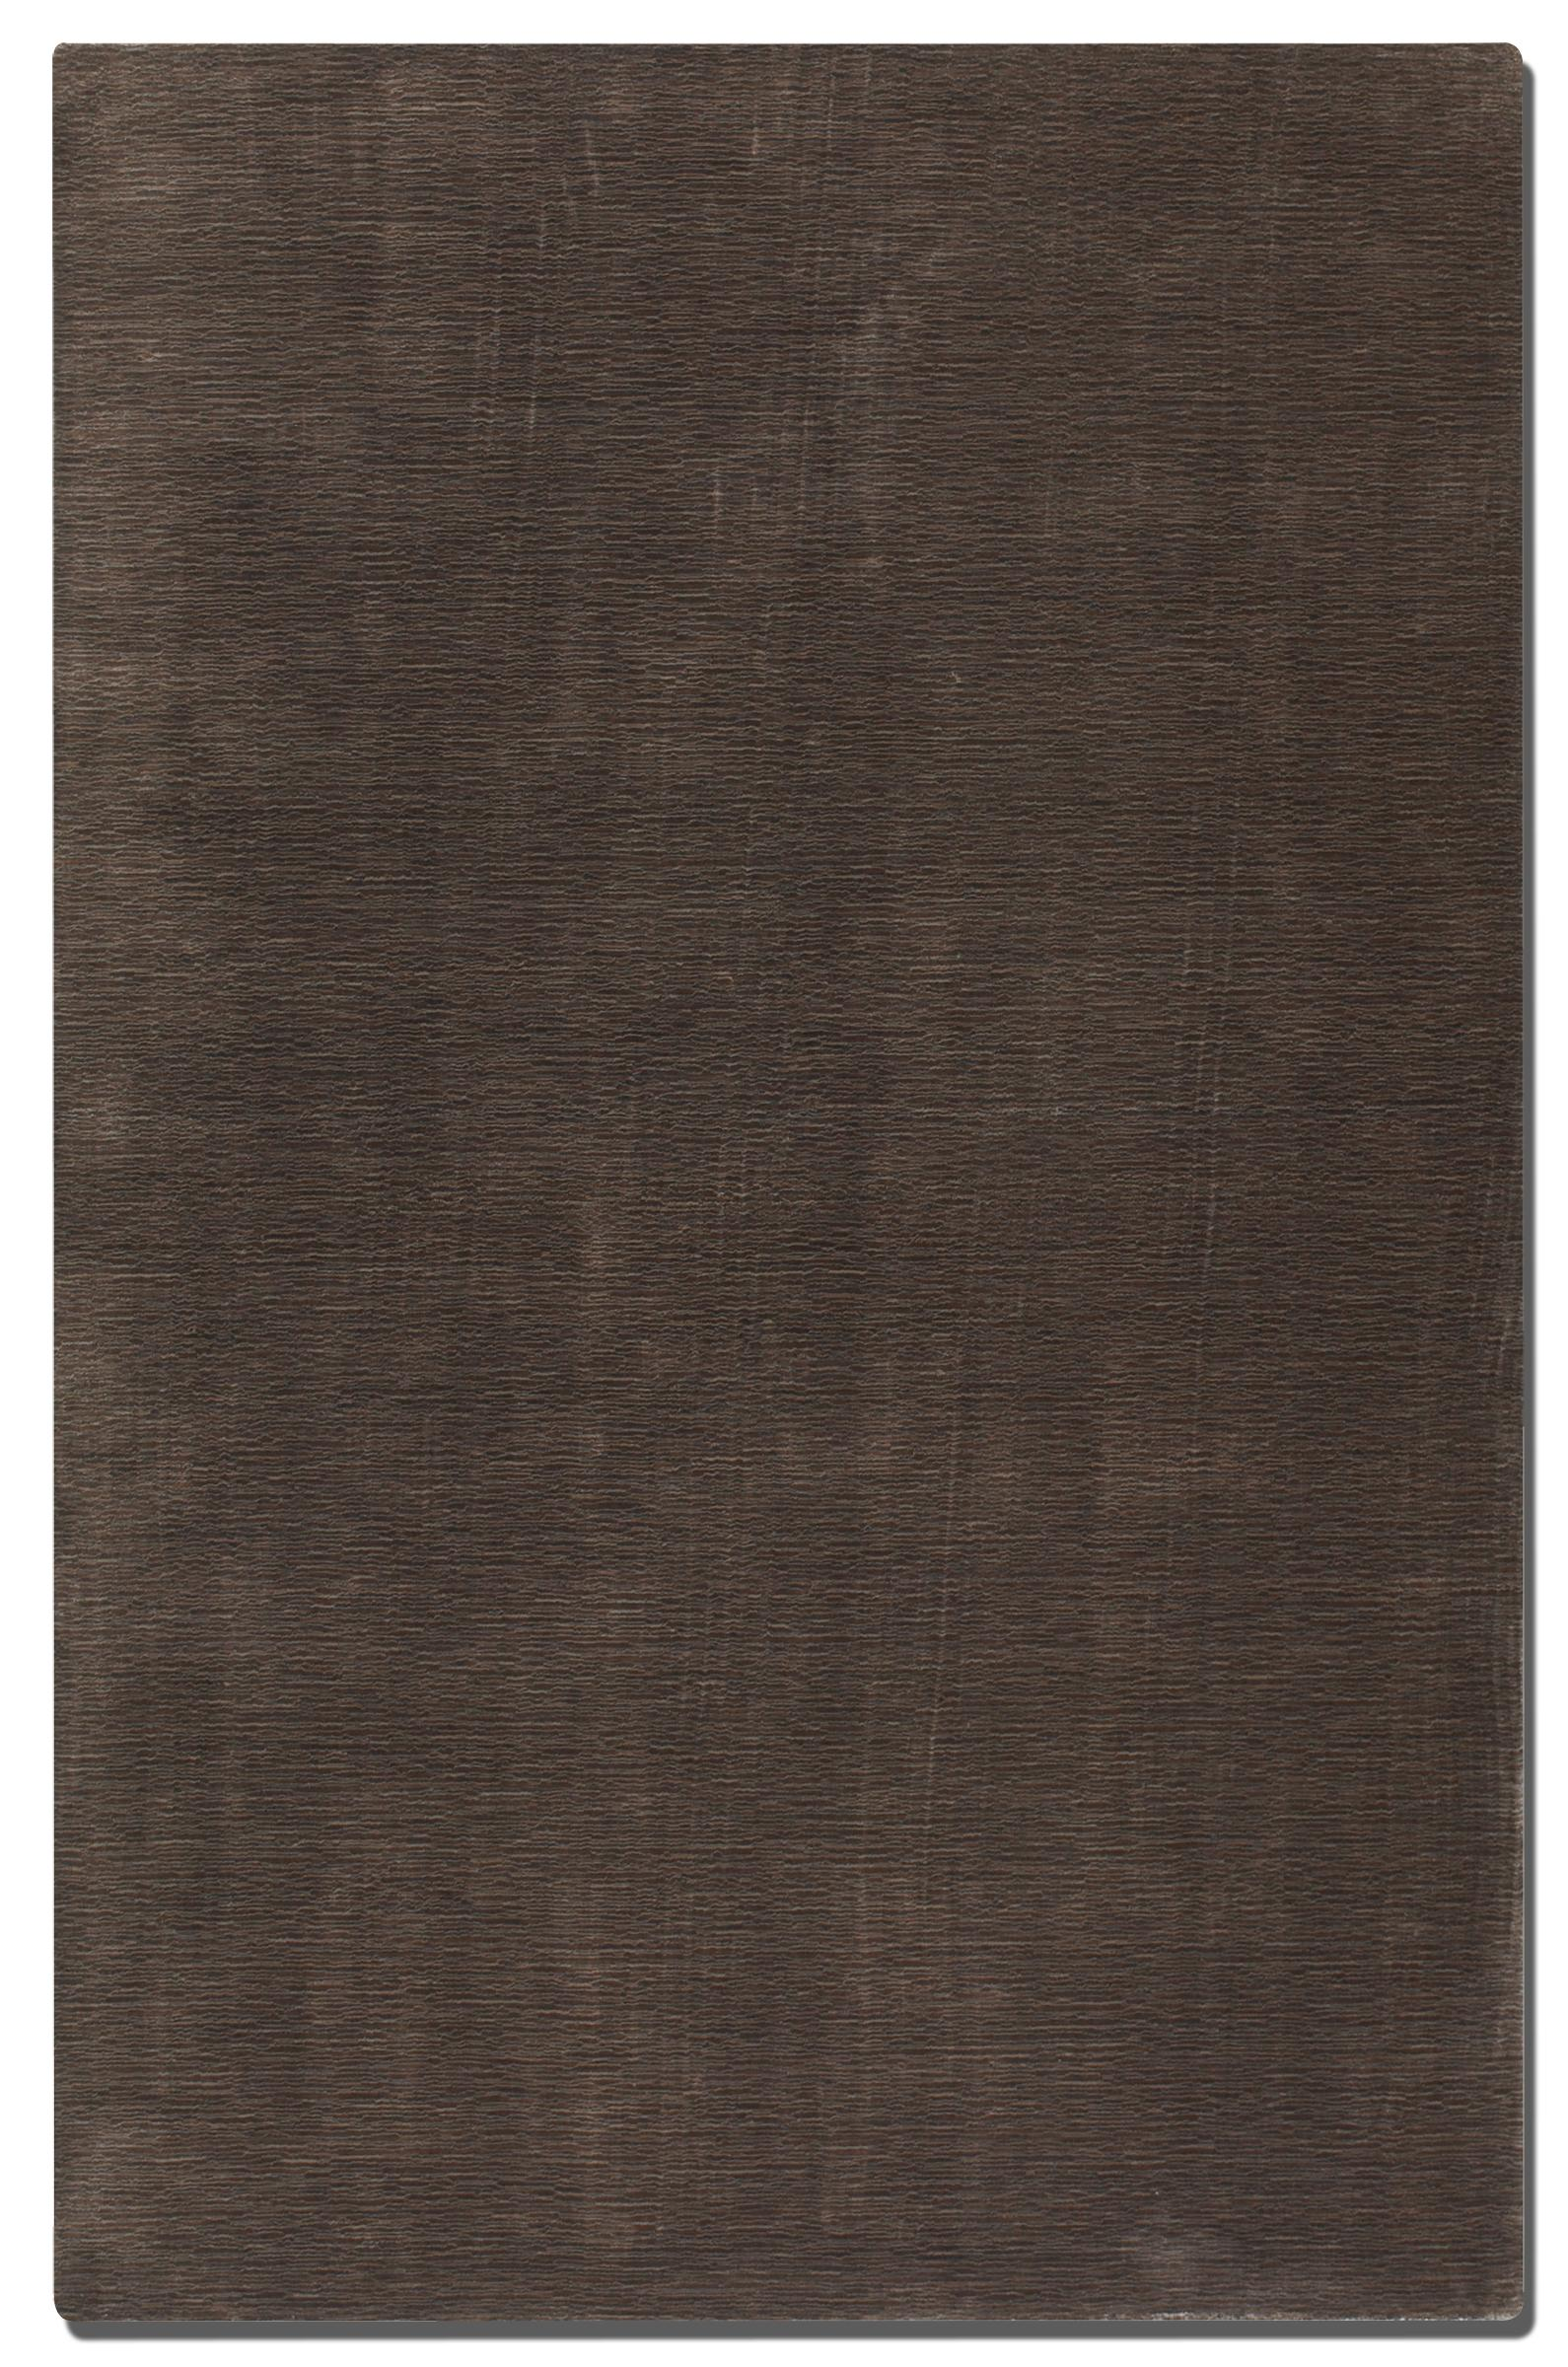 Uttermost Rugs Danube 8 X 10  - Item Number: 73017-8